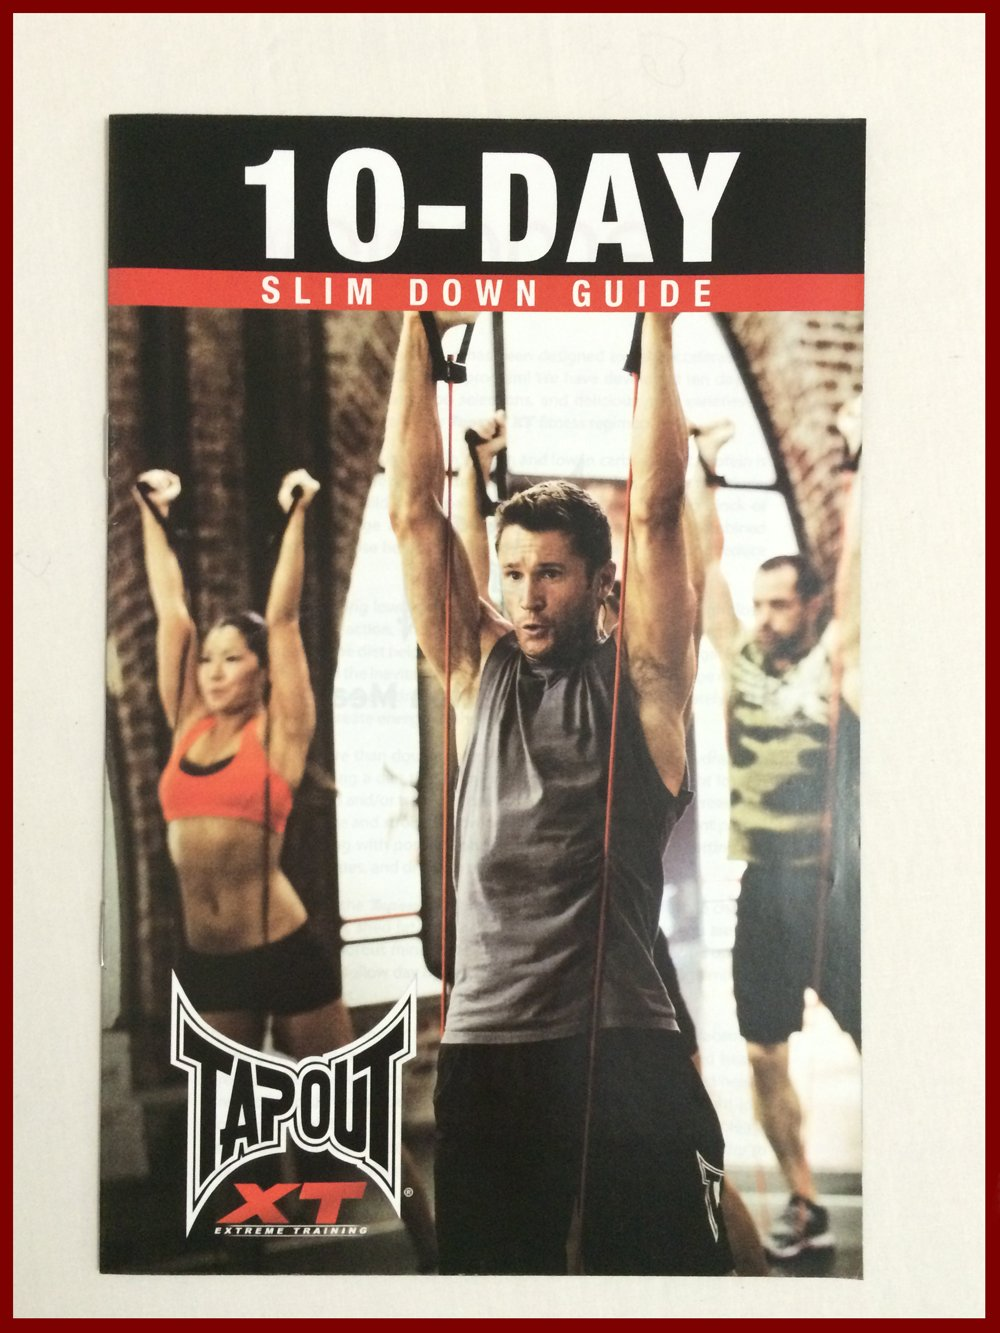 TapouT XT Complete Fitness Program including BONUS 3 Pack Leg Resistance Bands + MORE by TapouT XT